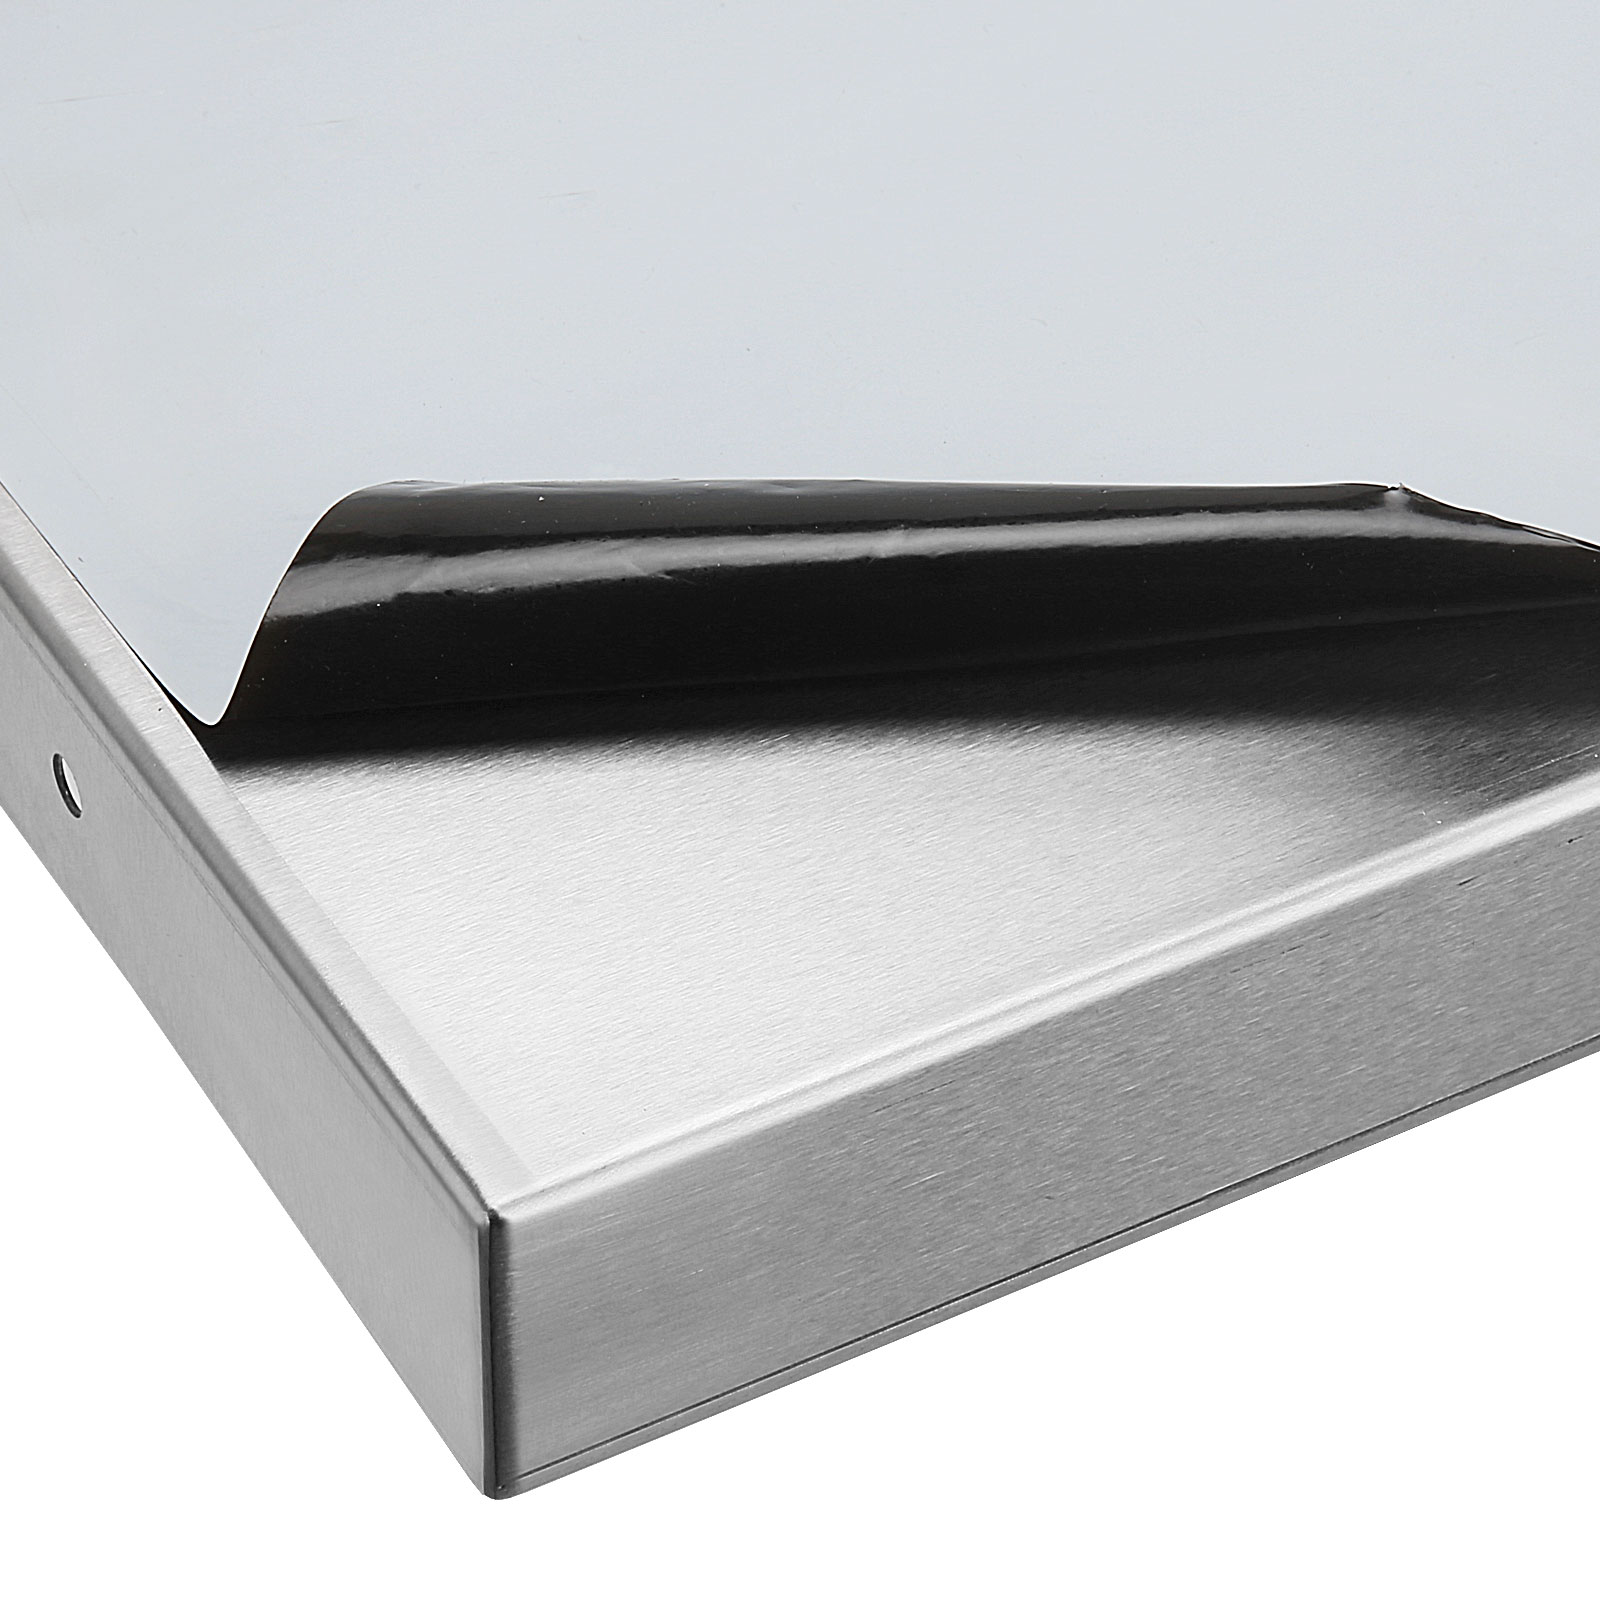 Commercial Stainless Steel Kitchen Catering Wall Shelf With Brackets 1200x350mm Ebay